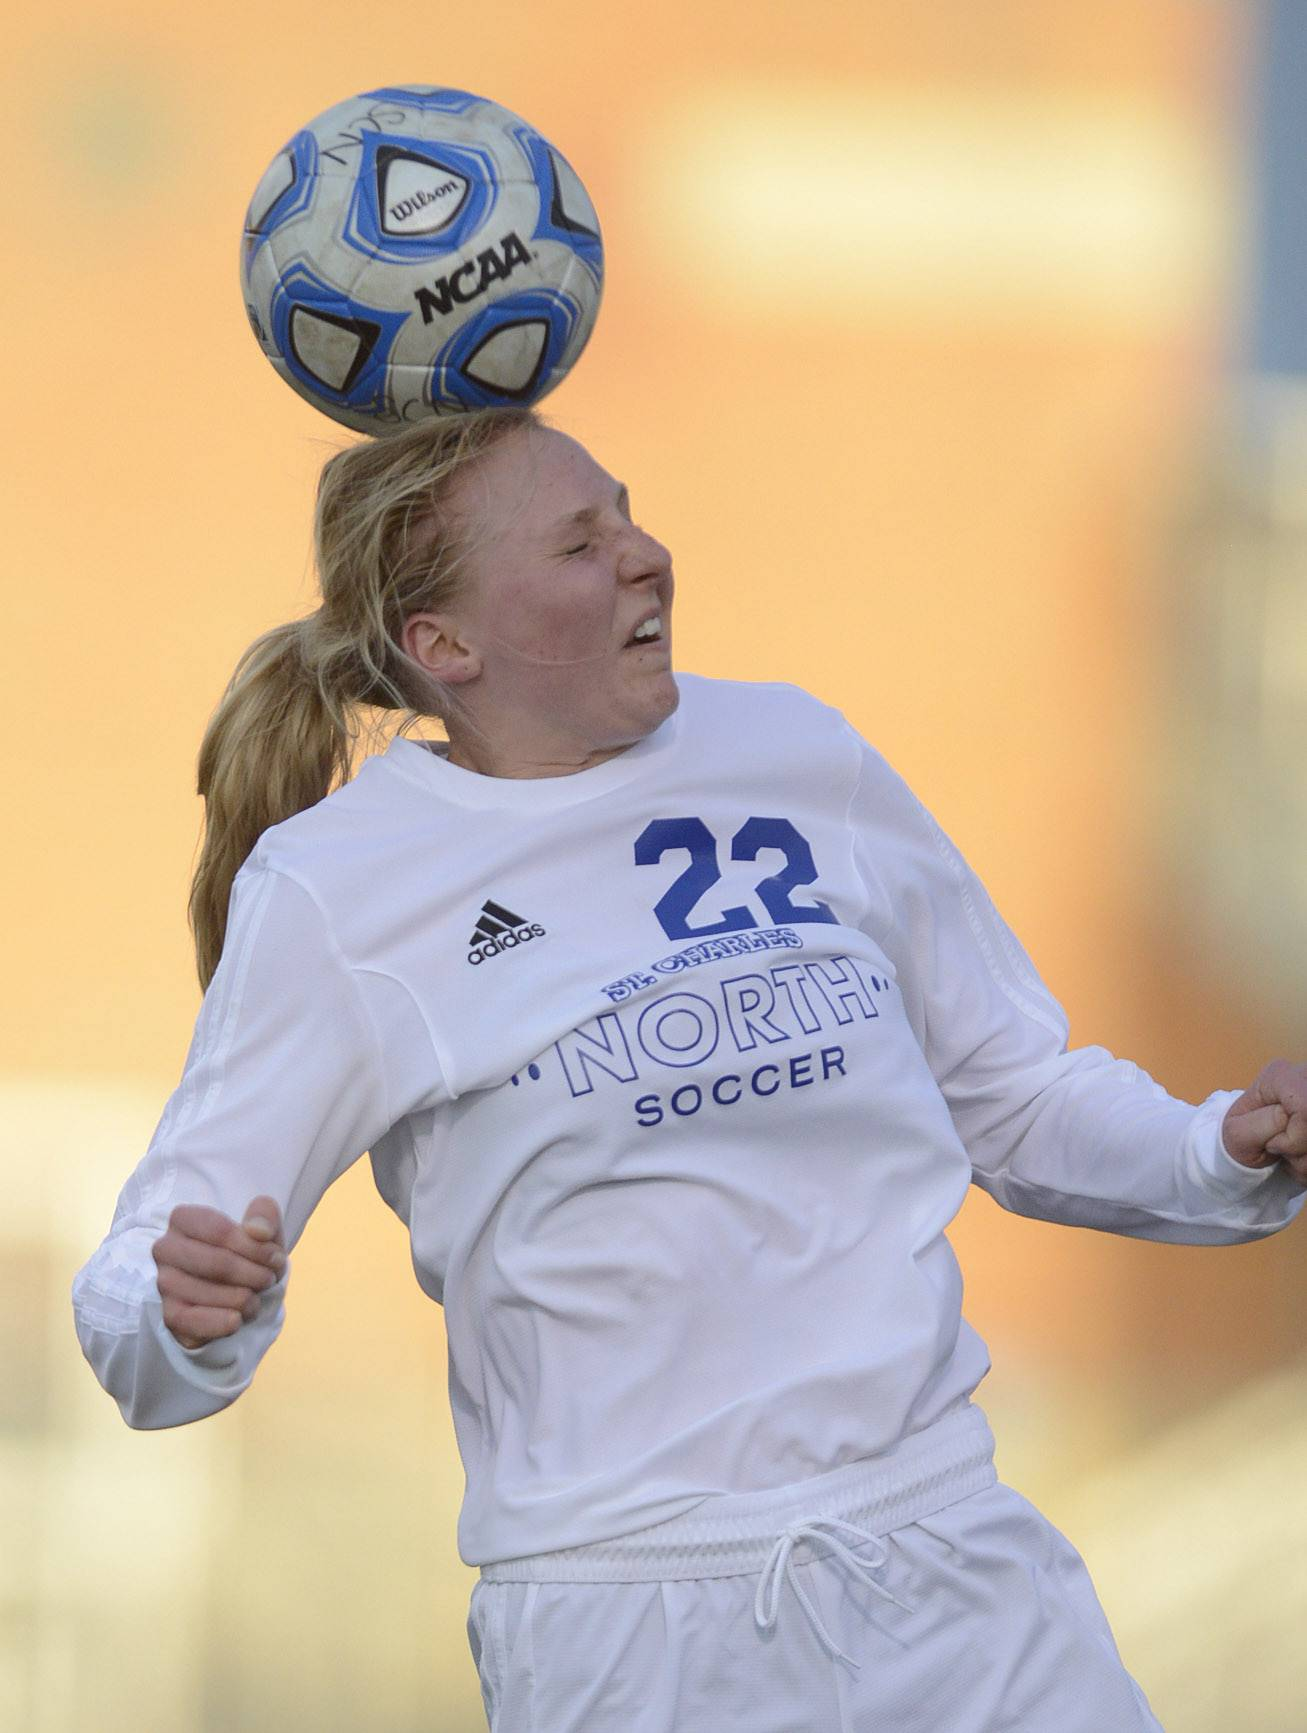 St. Charles North's Sophie Pohl heads the ball in the first half vs. Wheaton Warrenville South on Thursday, April 10.